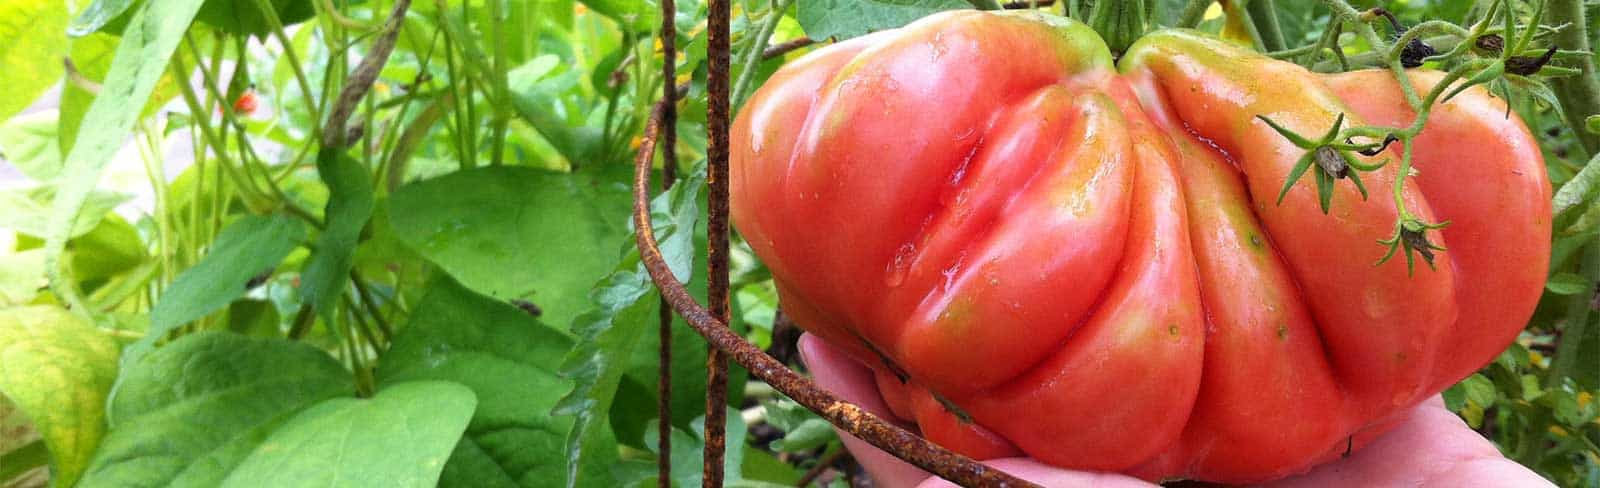 FI-Tomato-How-to-Extend-Season